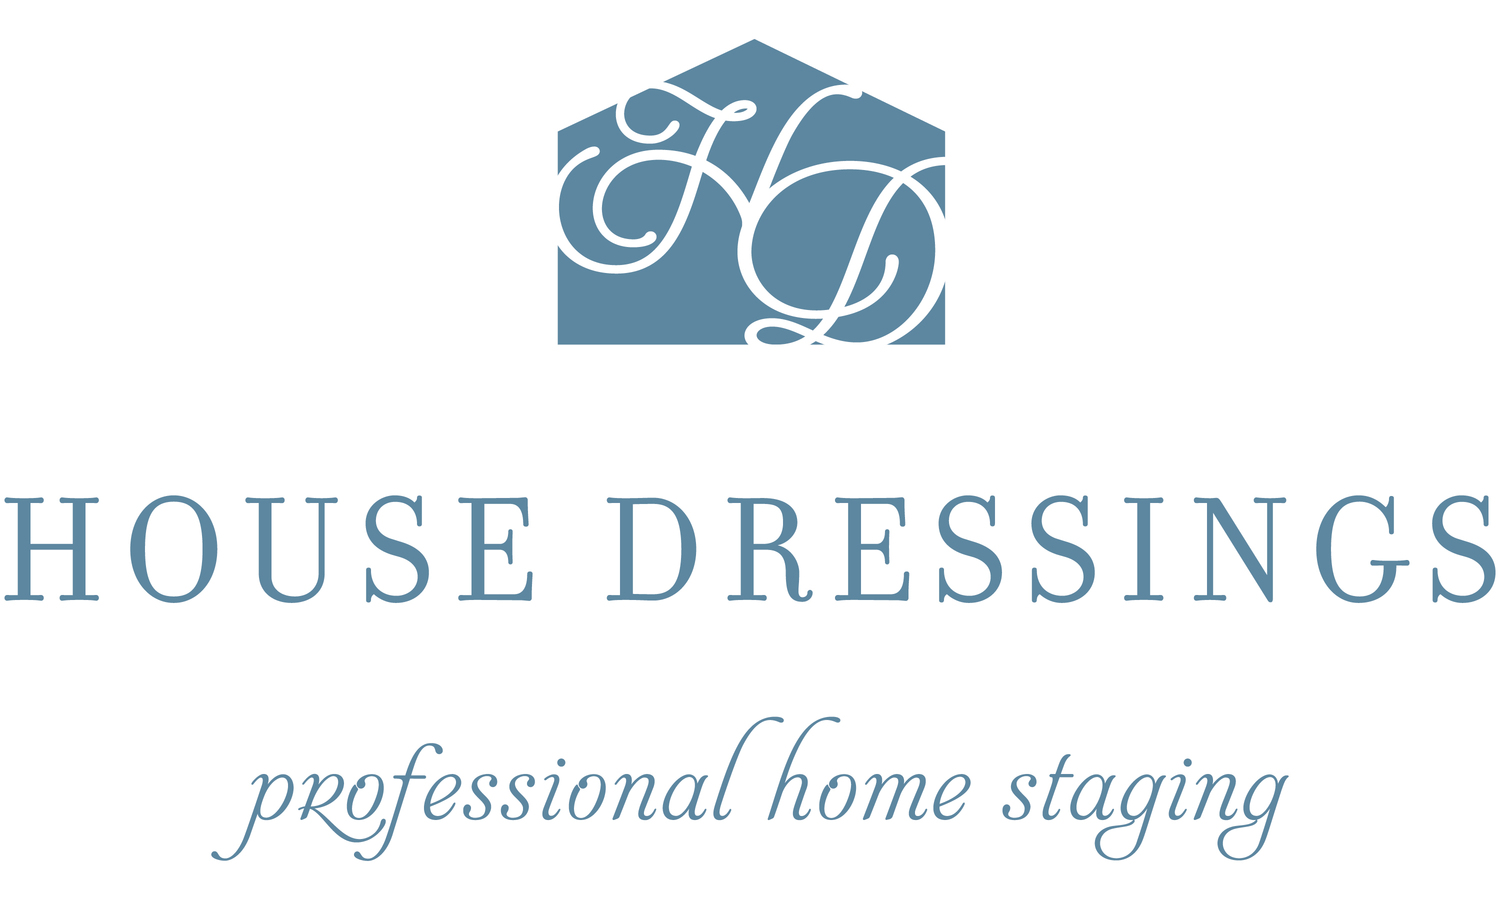 House Dressings